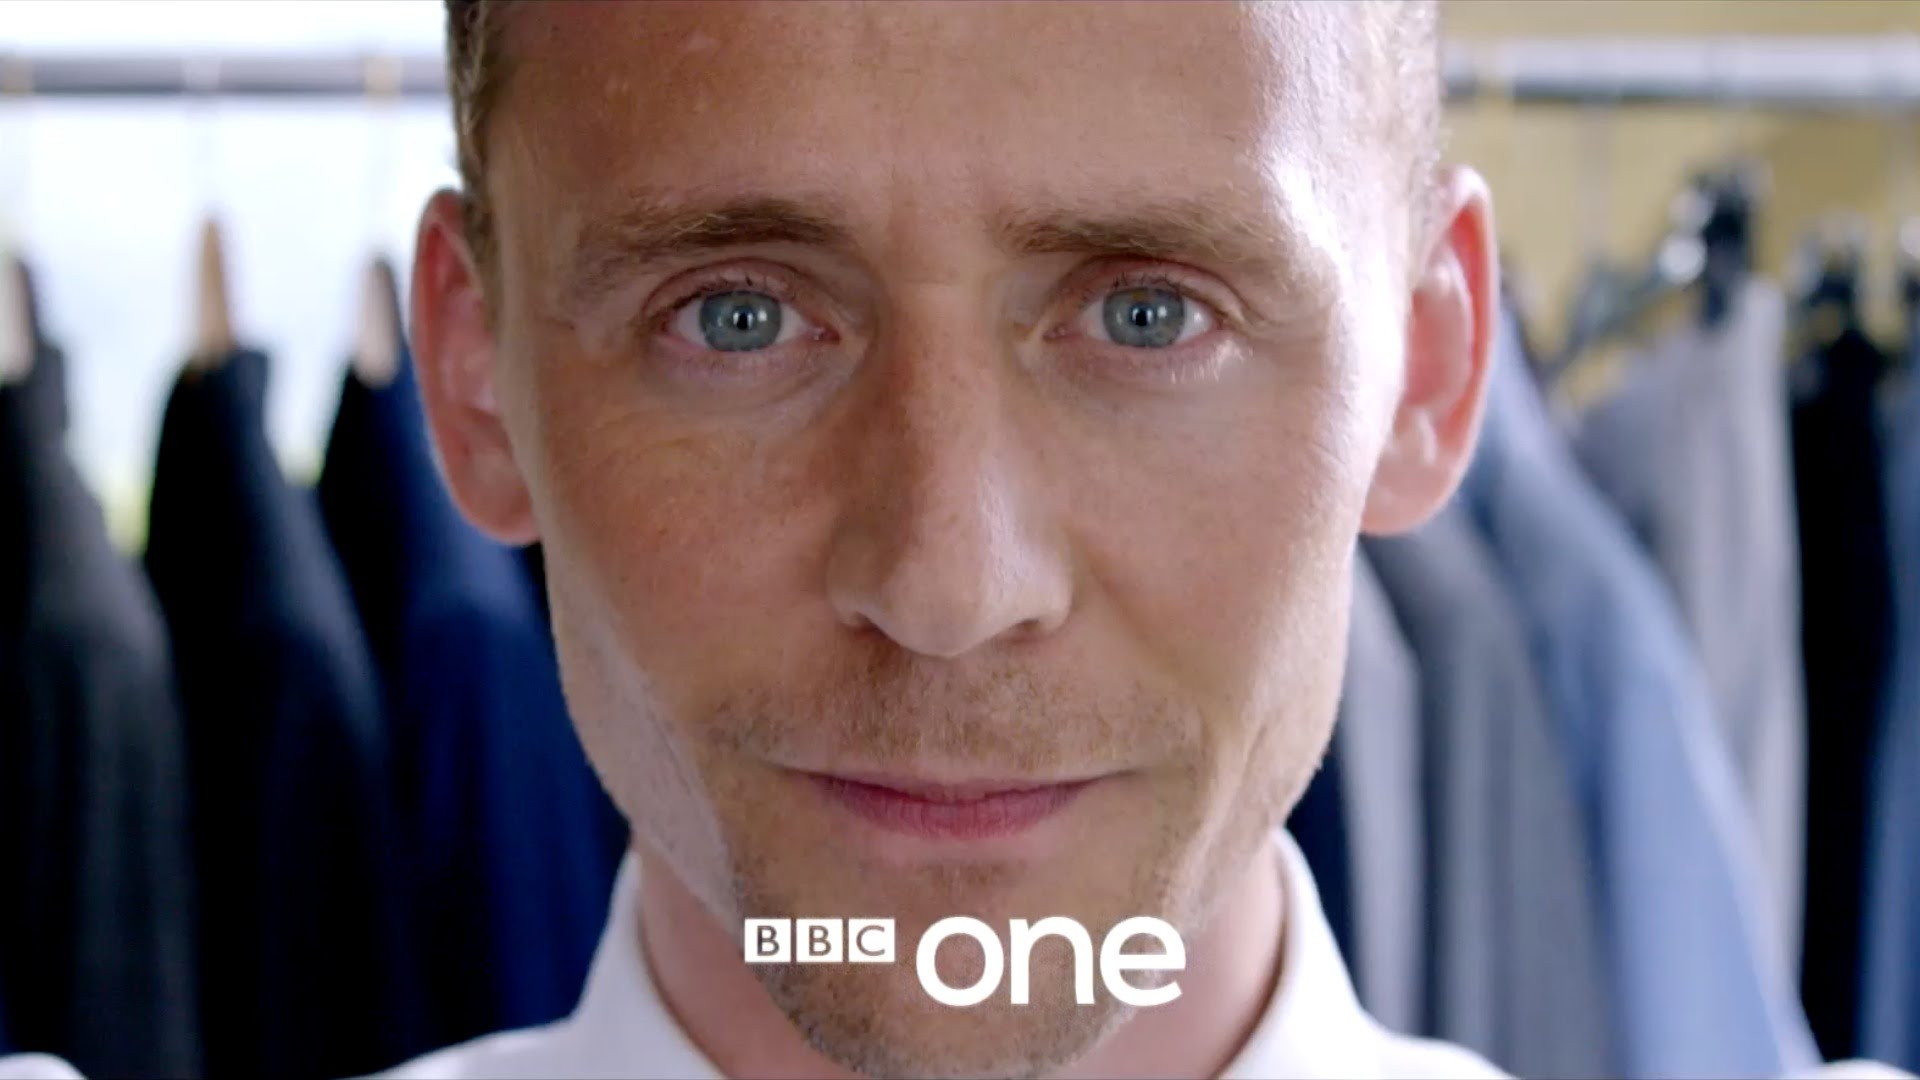 thenightmanager